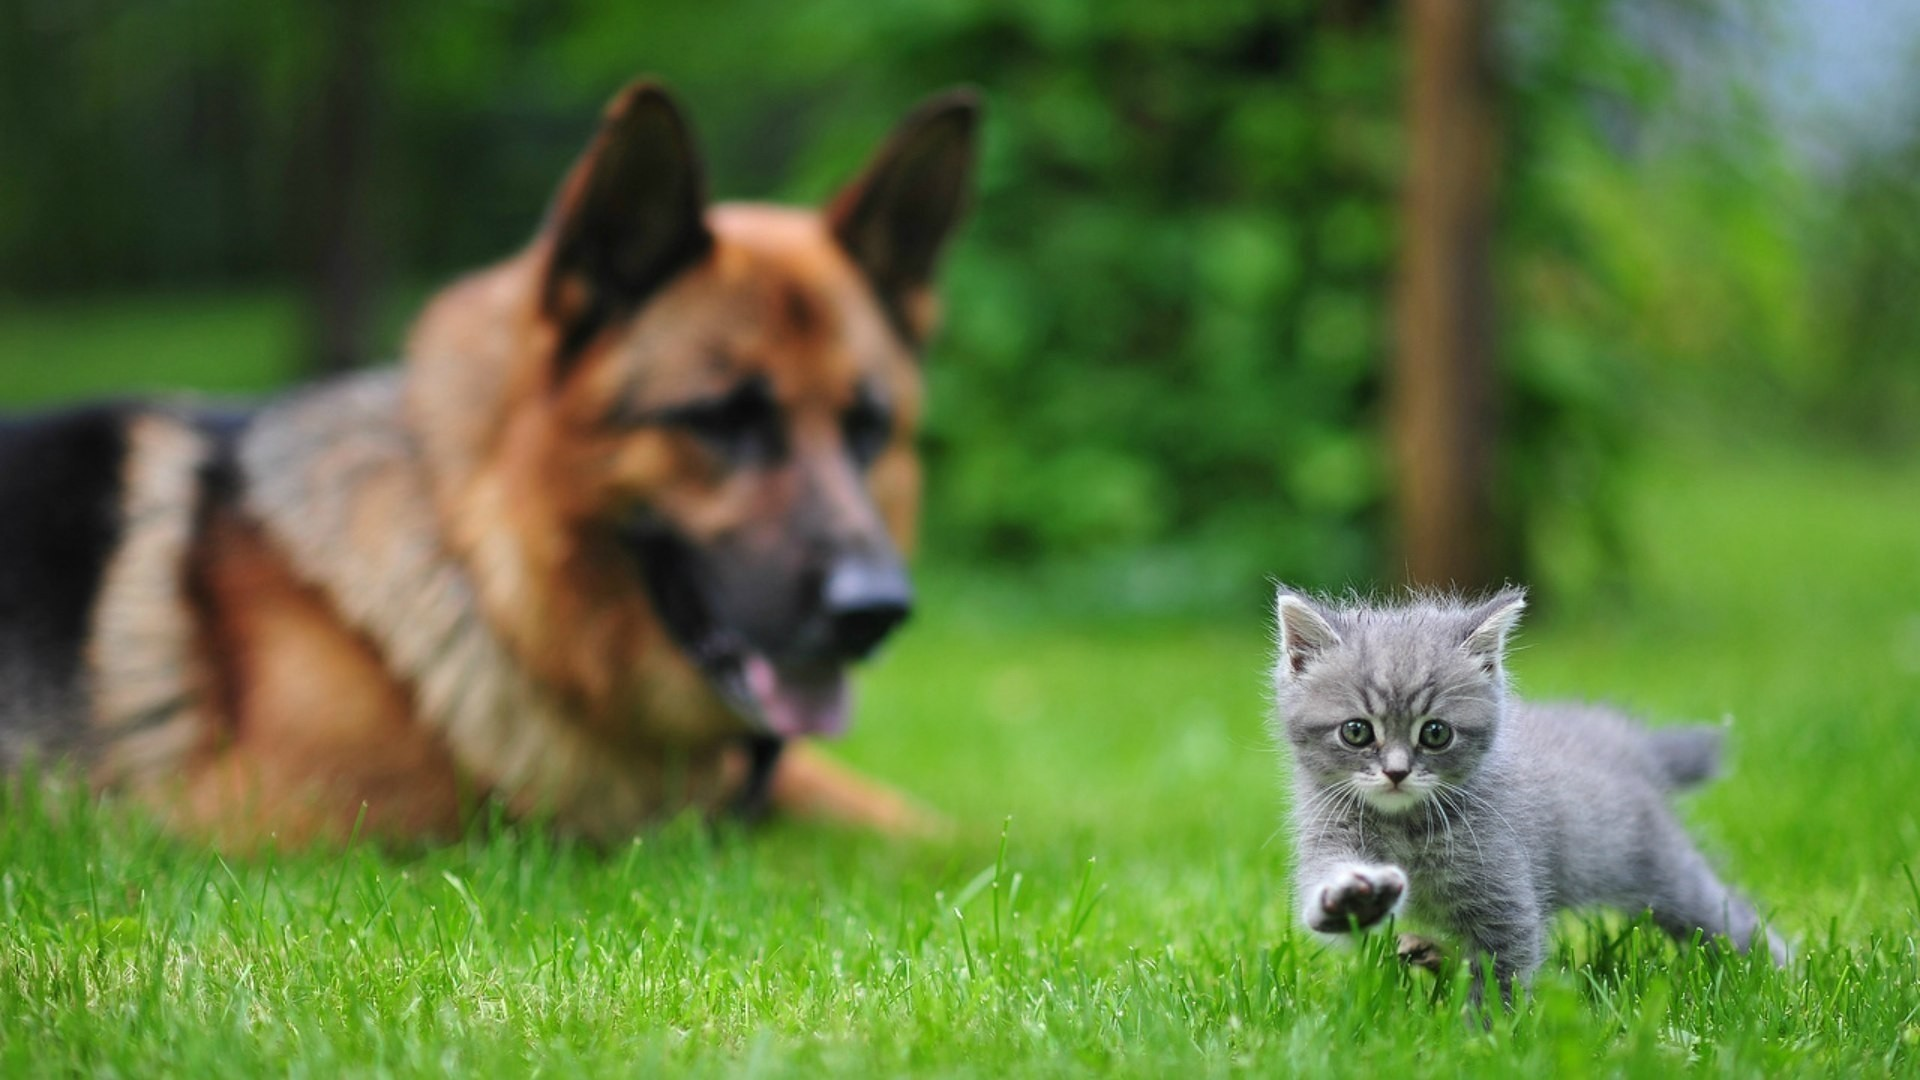 Cute Wallpapers Of Kittens And Puppies Cats And Dogs Wallpaper 183 ① Wallpapertag